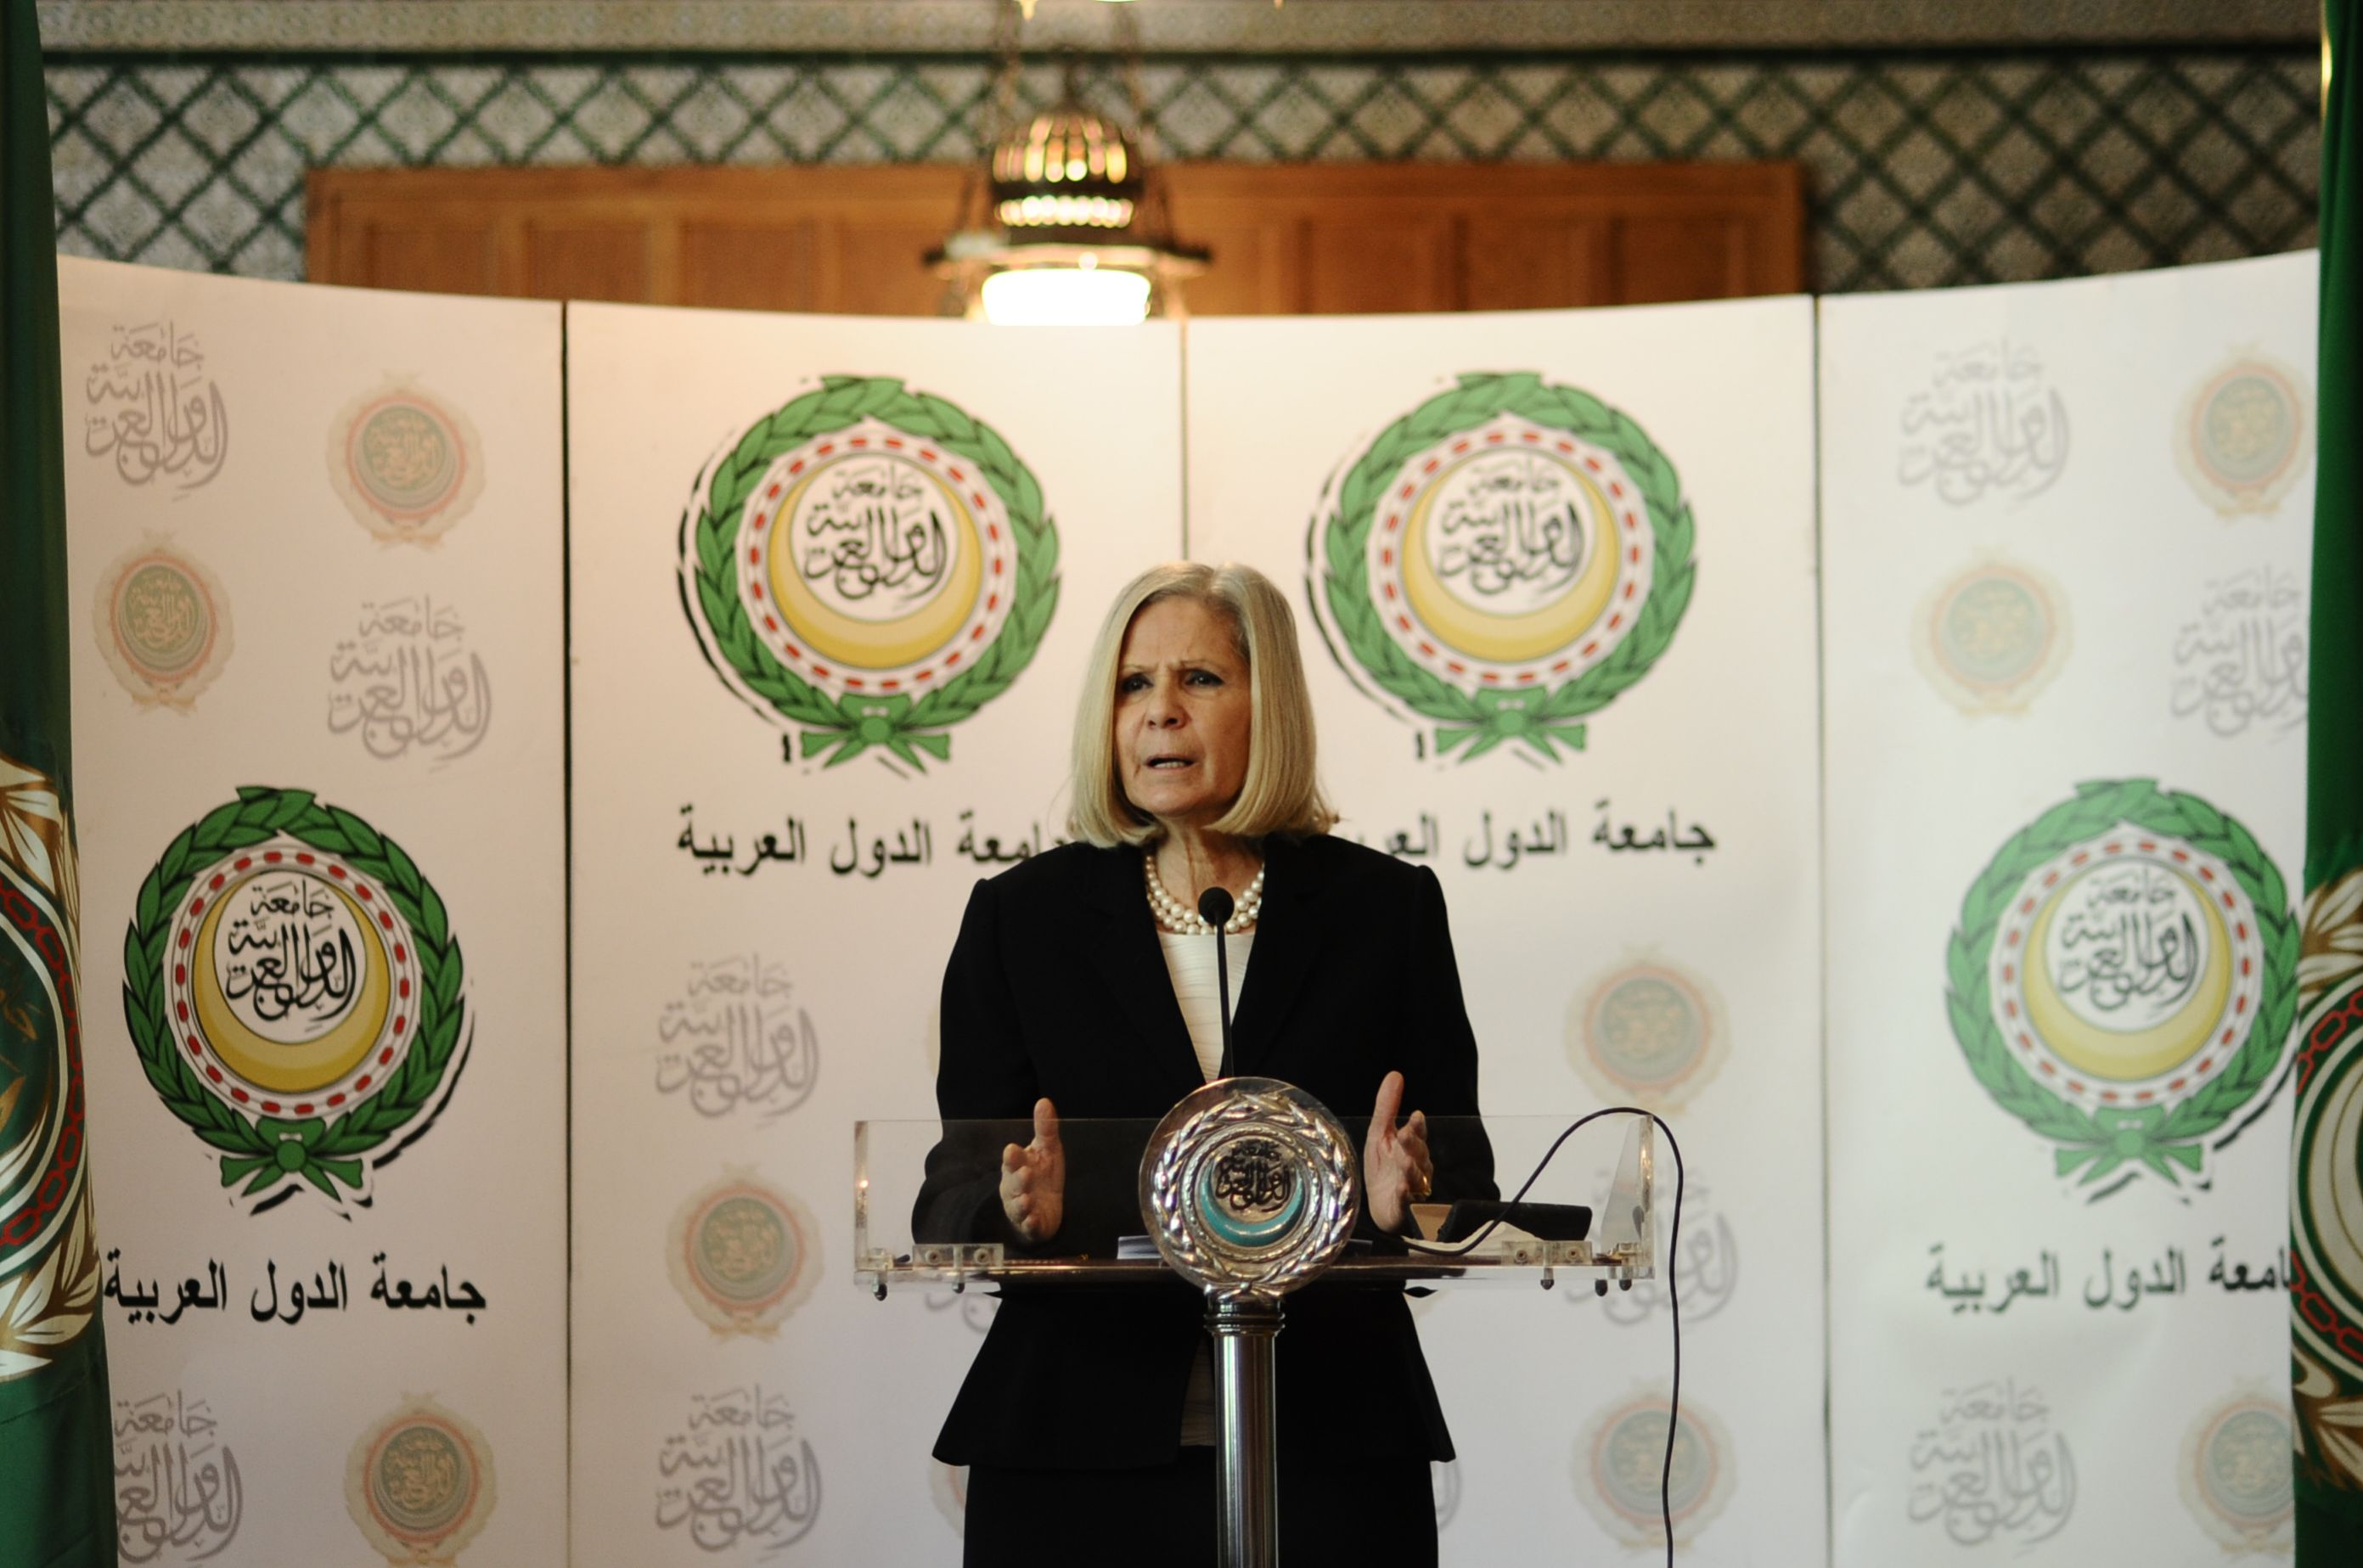 Haifa Abu Ghazaleh, the head of the Arab League observer mission, presented the initial findings of her mission on Thursday morning. (Ali Omar)